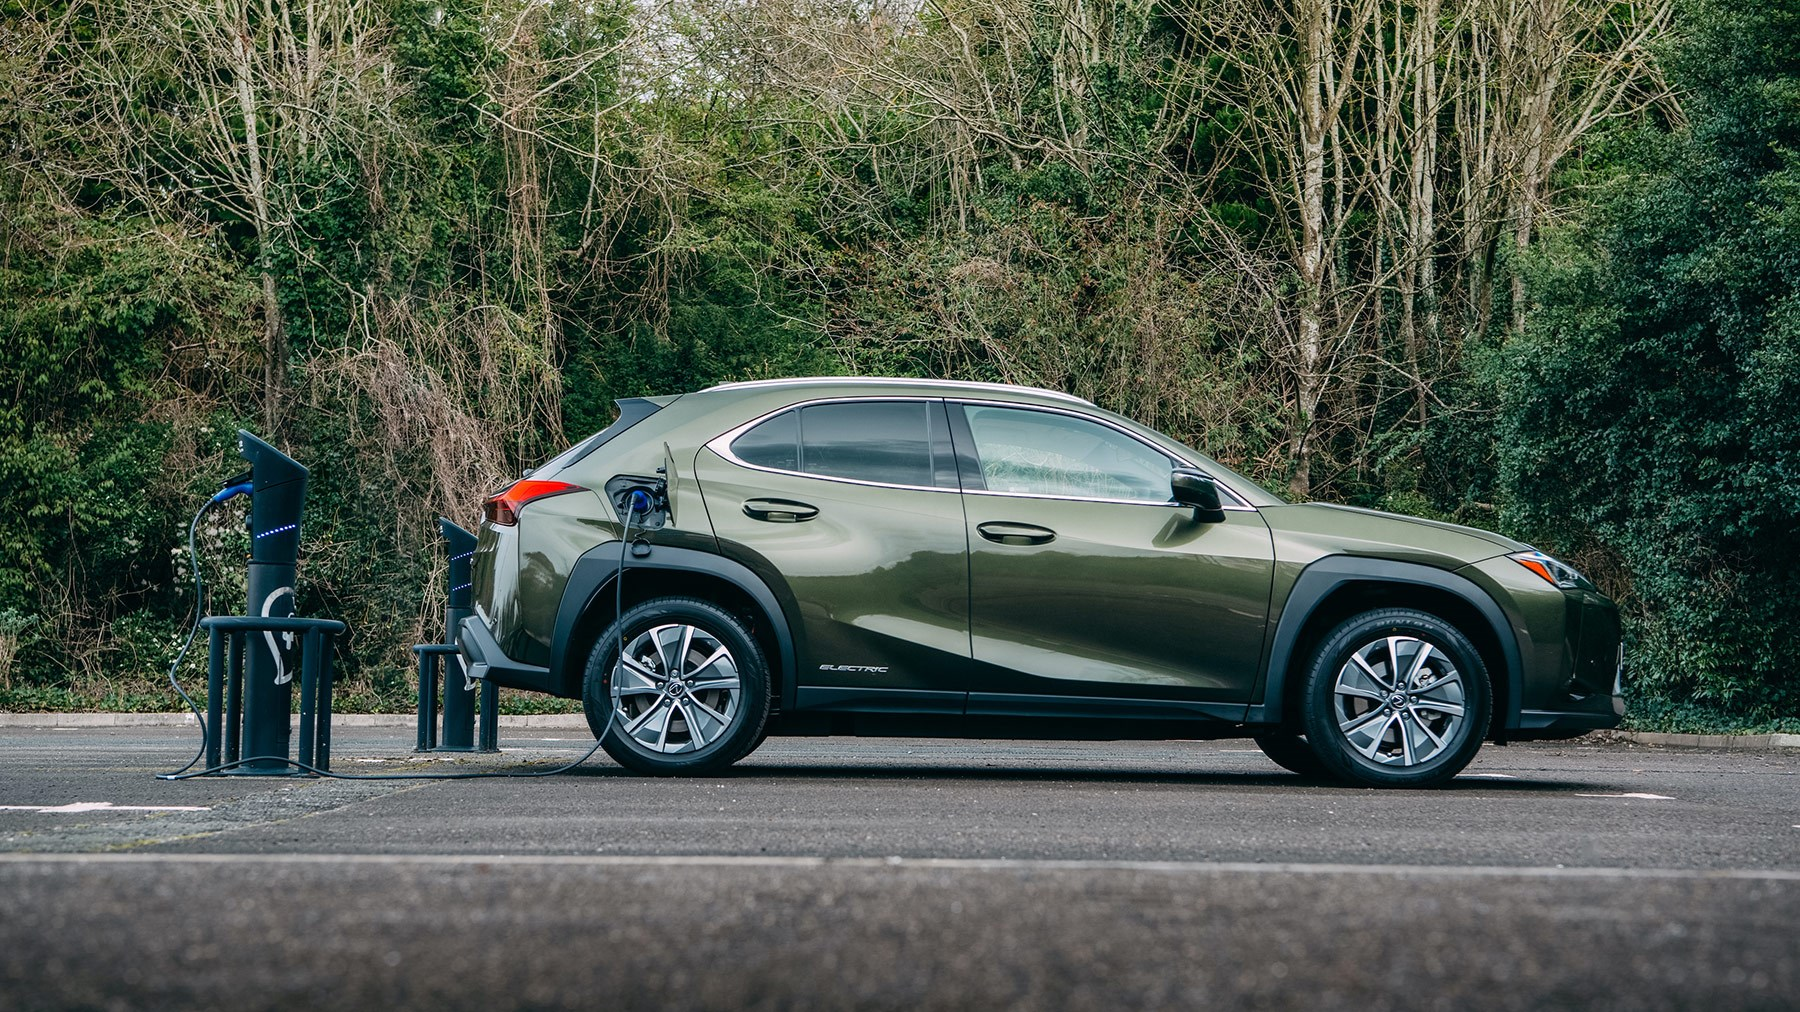 Lexus UX300e: charging the electric SUV